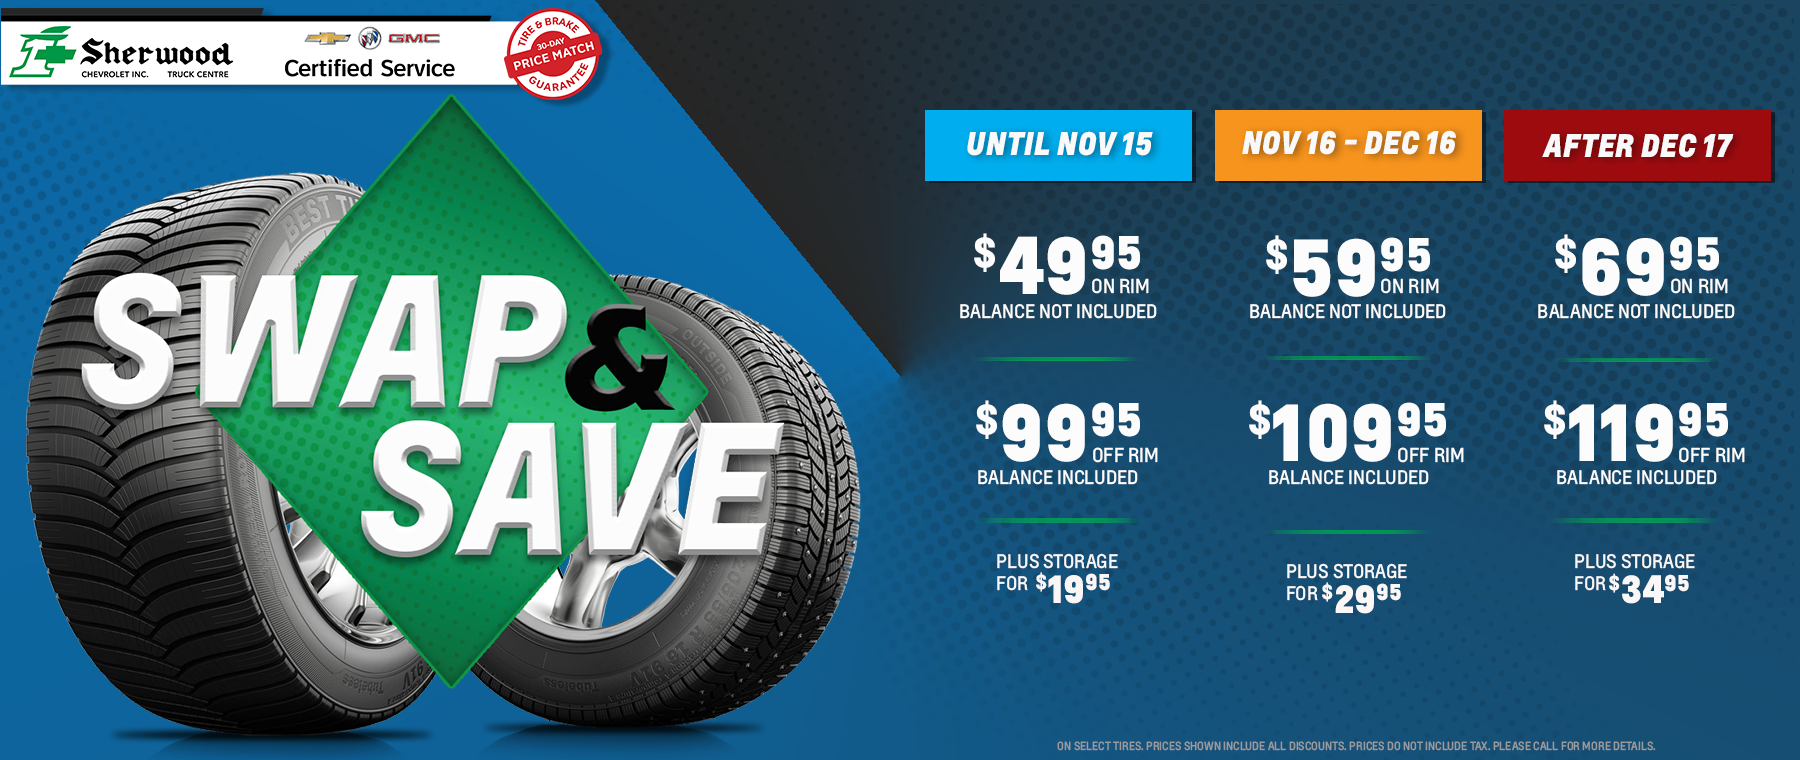 image of tires on blue background with tire promotion info